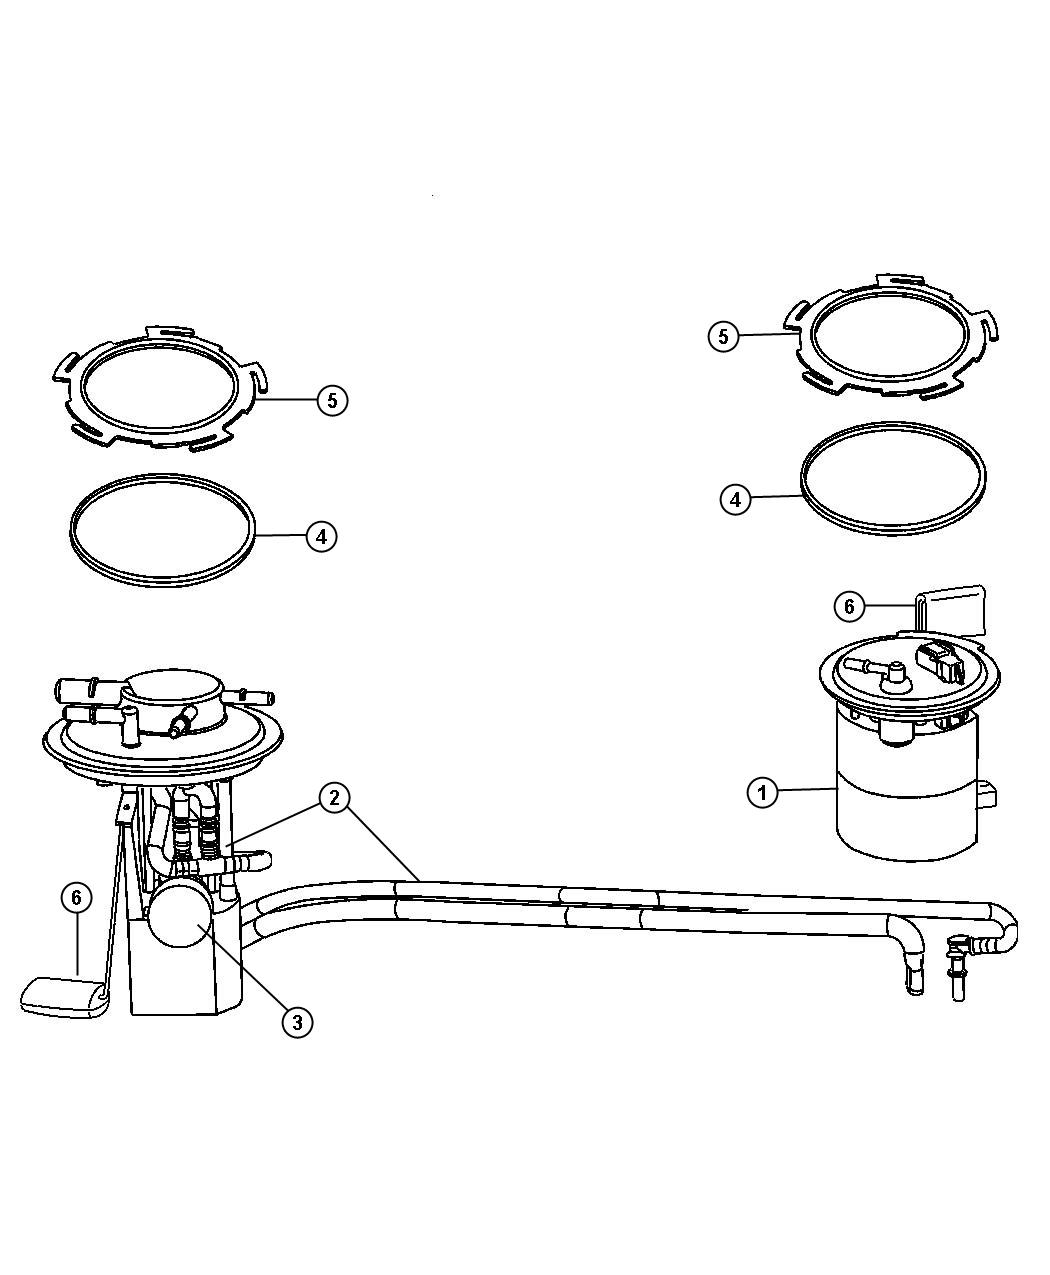 04 Chrysler Pacifica Fuel Tank Diagram 04 Free Engine Image For User Manual Download